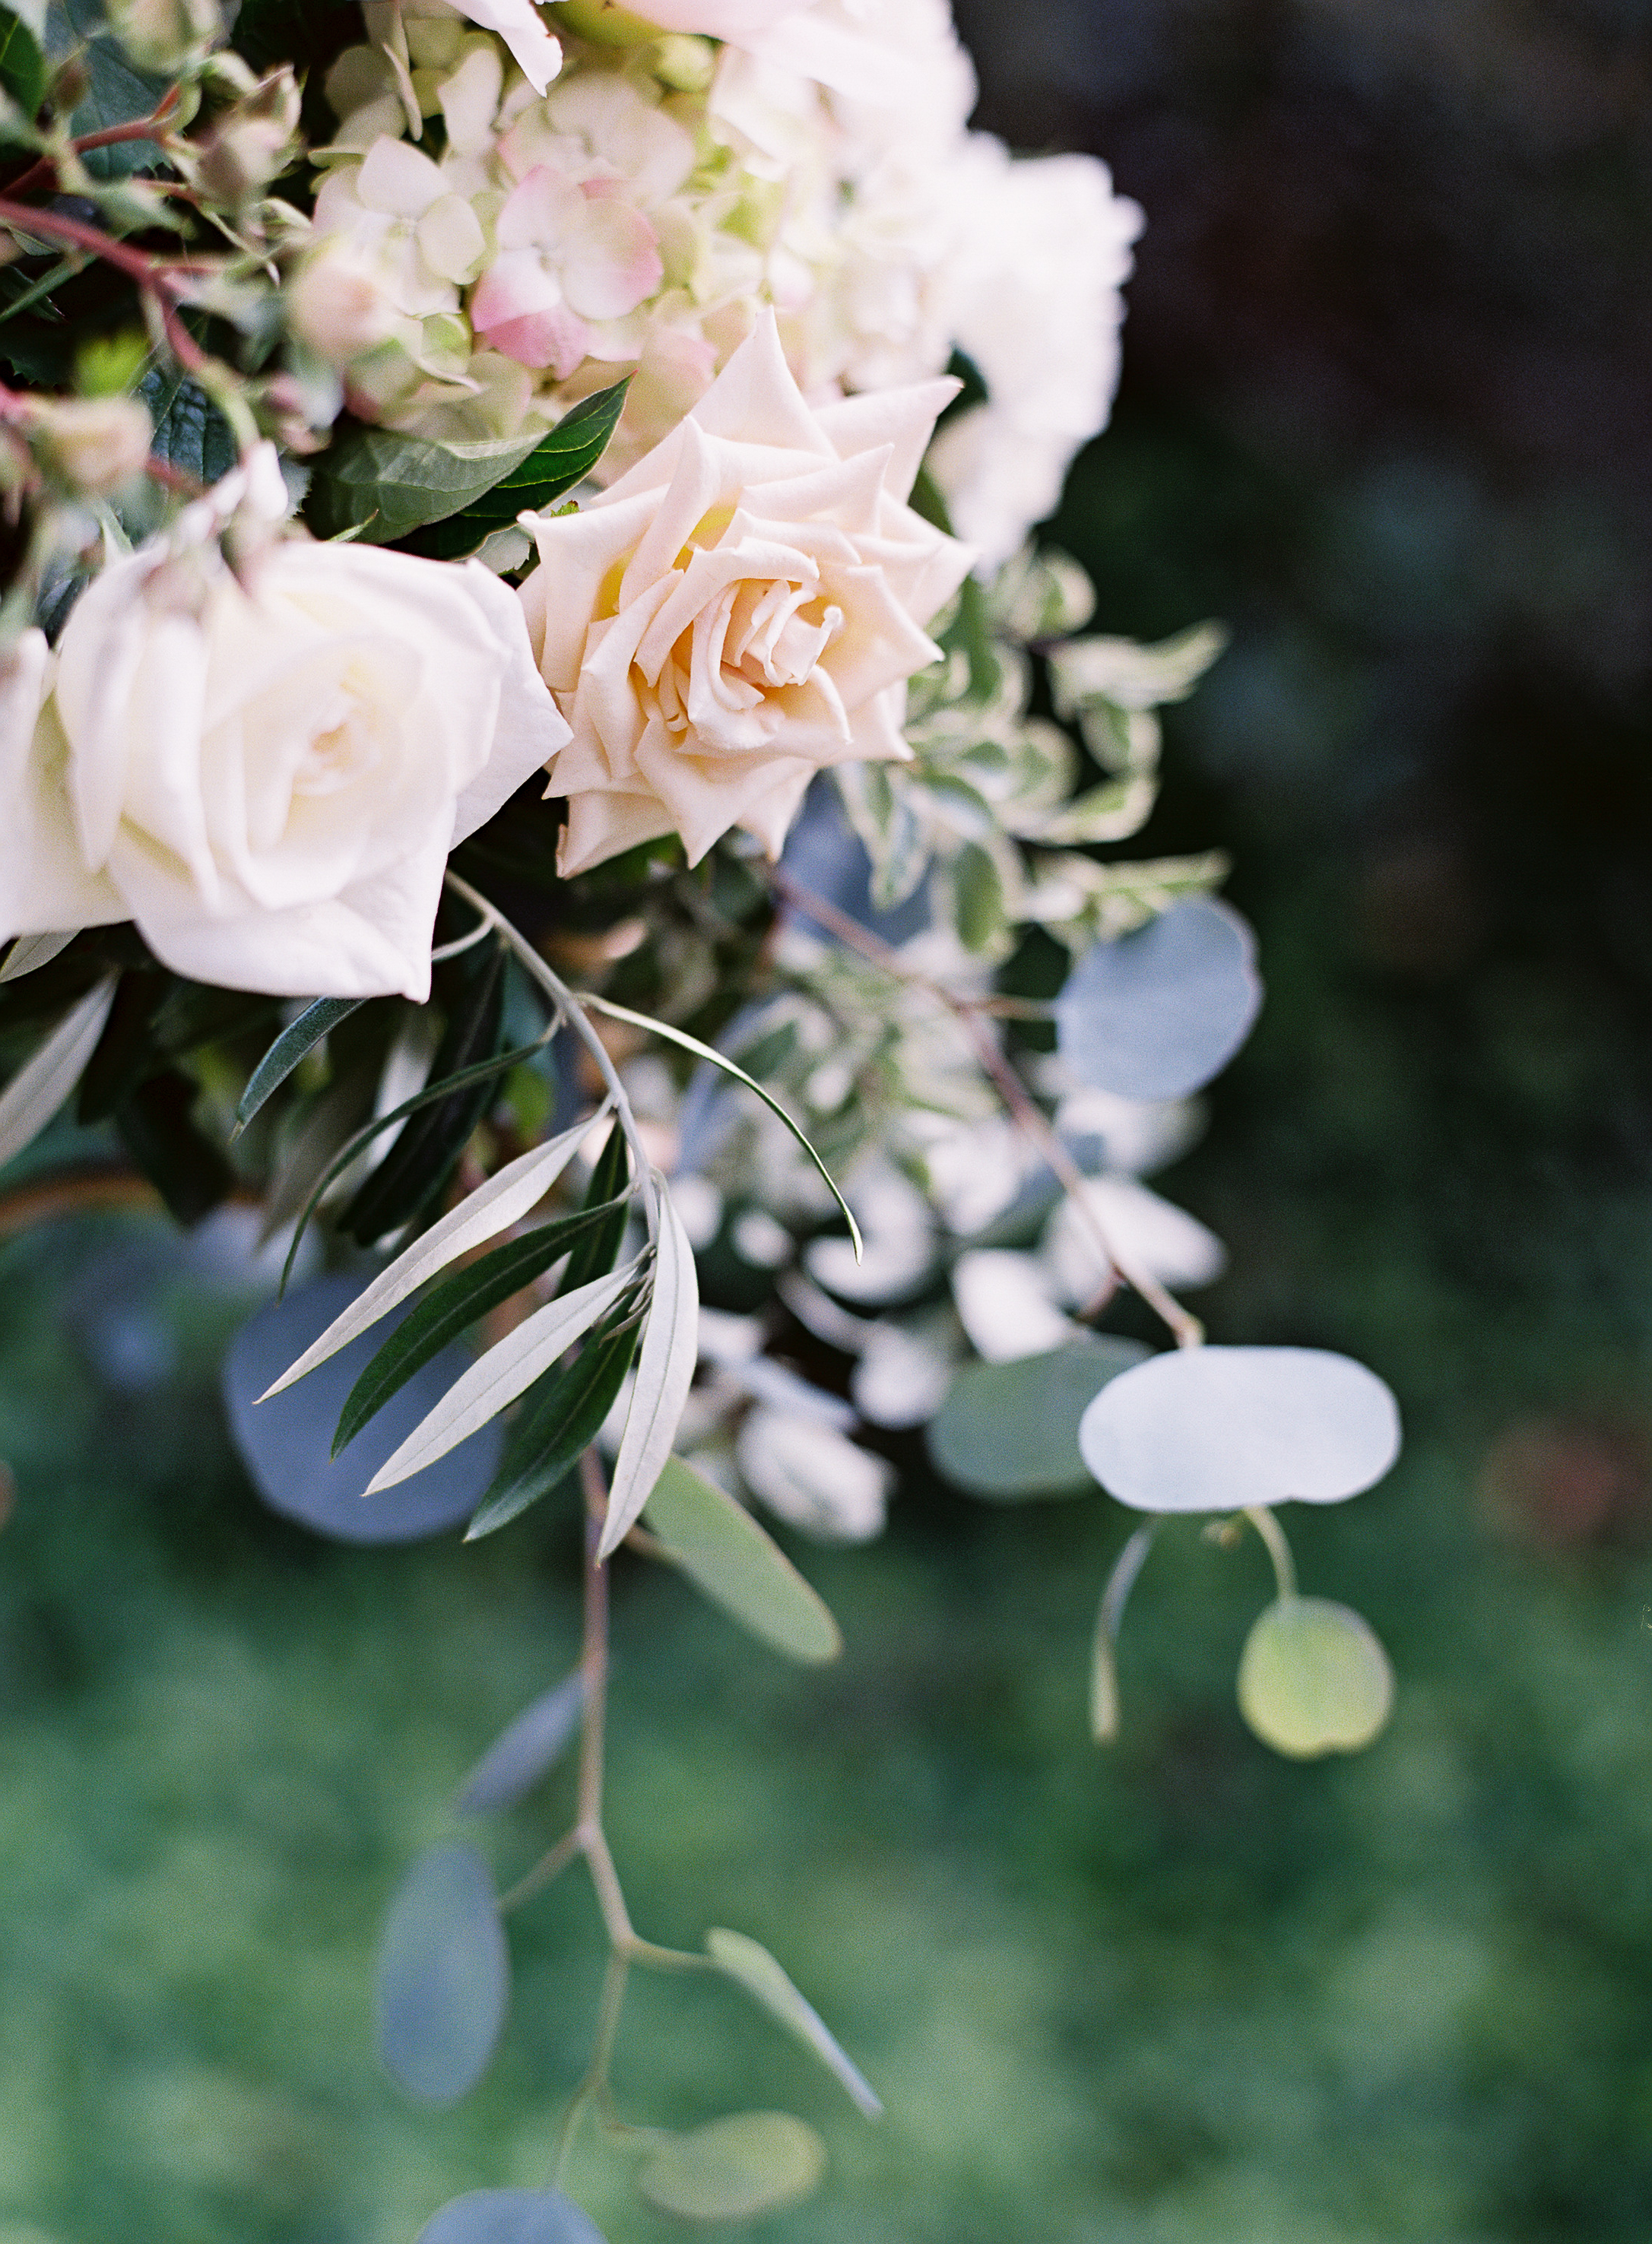 Meghan Mehan Photography | Fine Art Film Wedding Photographer | California | San Francisco | Napa | Sonoma | Santa Barbara | Big Sur | Destination Wedding Photographer 116.jpg